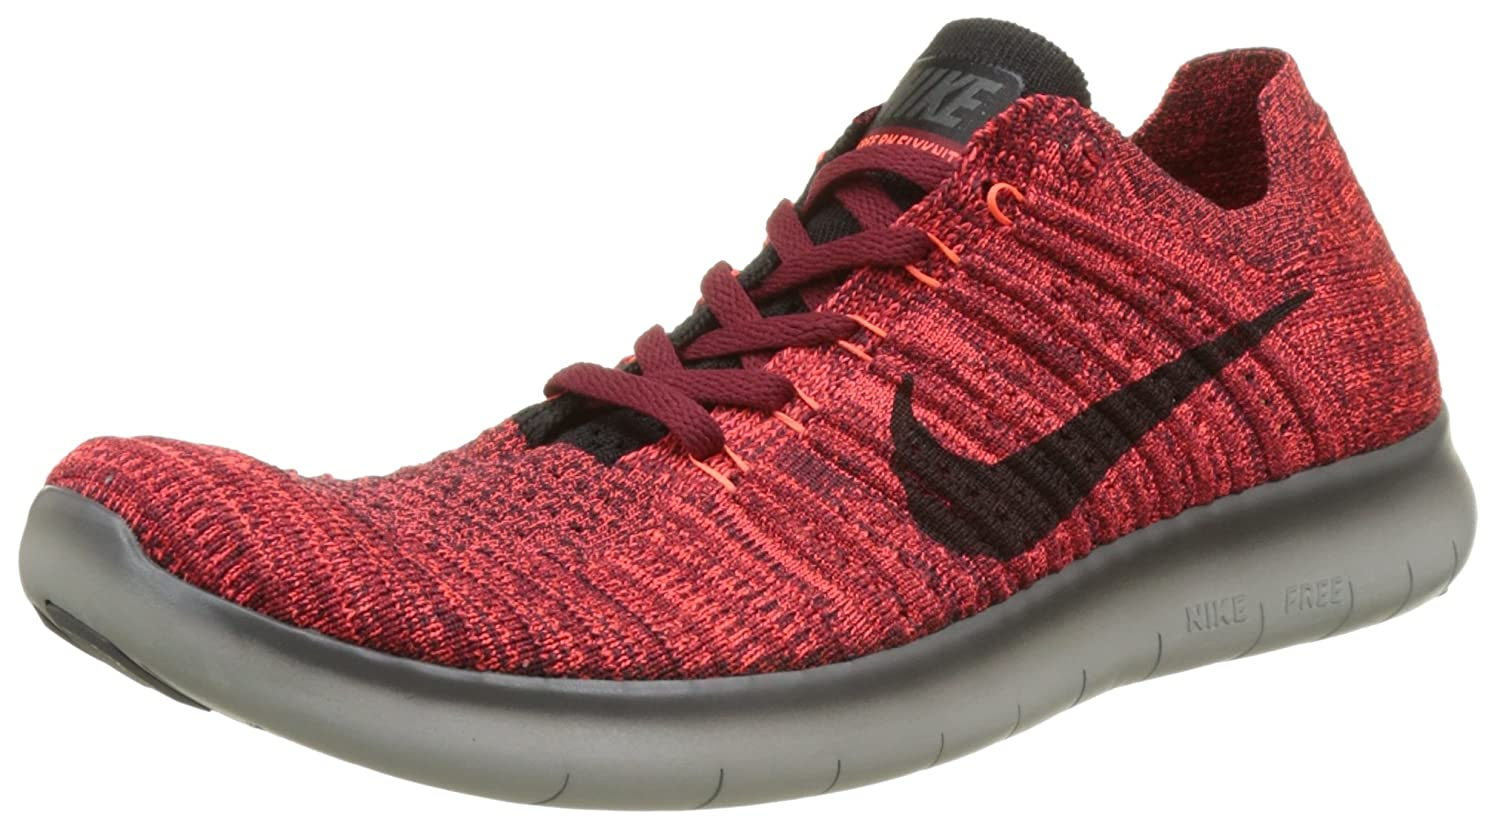 wholesale price newest collection release date Amazon.com   Nike Free RN Flyknit 831069-602 Red/Black/Grey ...